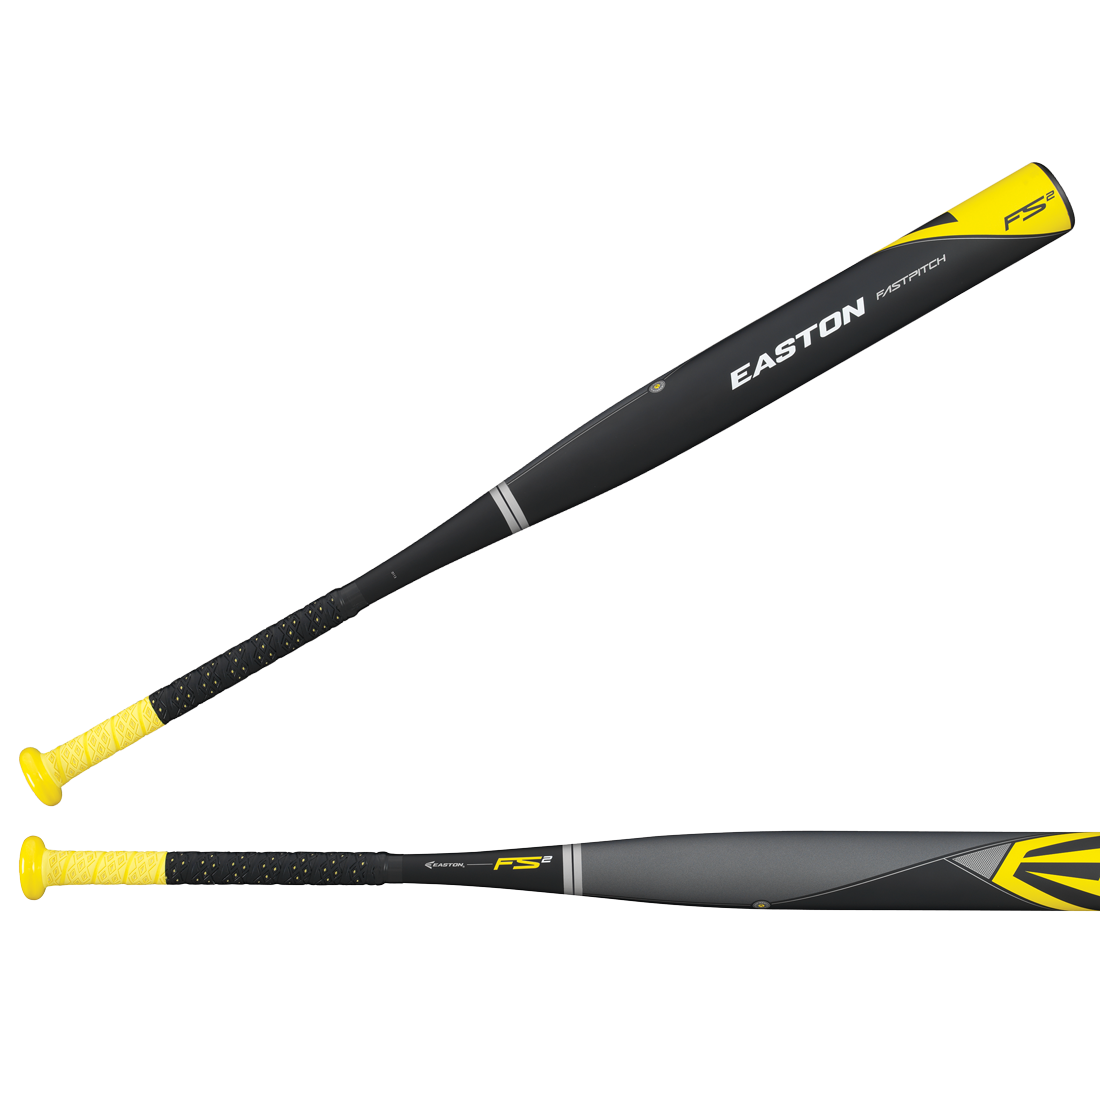 Softball Bat Png image #38818